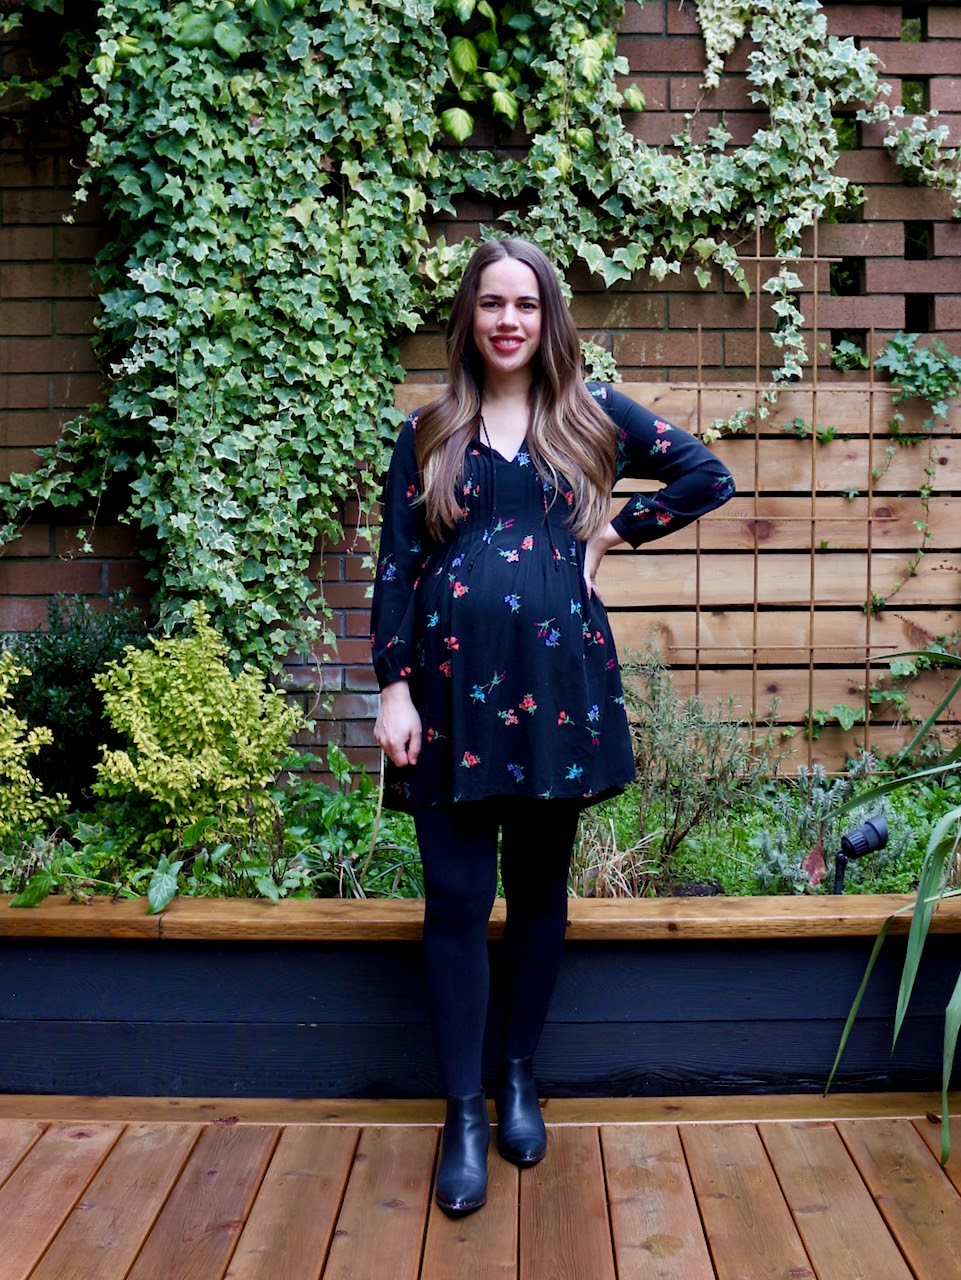 Jules in Flats - Floral Tie-Neck Swing Dress (Business Casual Workwear on a Budget)